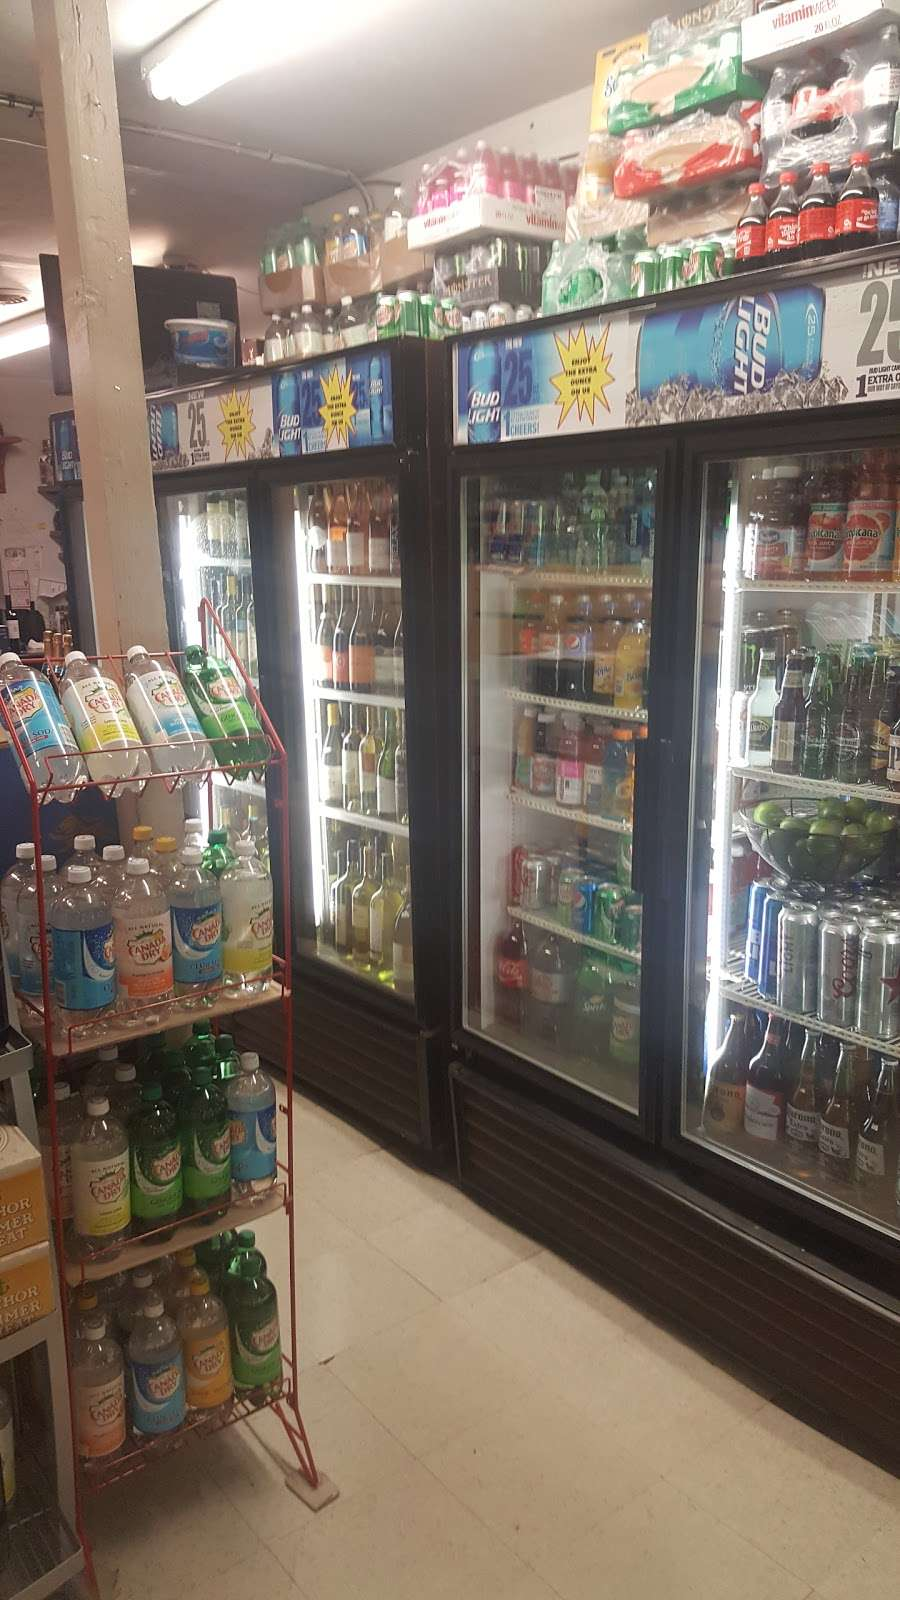 Daniel Liquors & Wines Inc - store  | Photo 7 of 10 | Address: 87 Garden St, Hoboken, NJ 07030, USA | Phone: (201) 656-9997